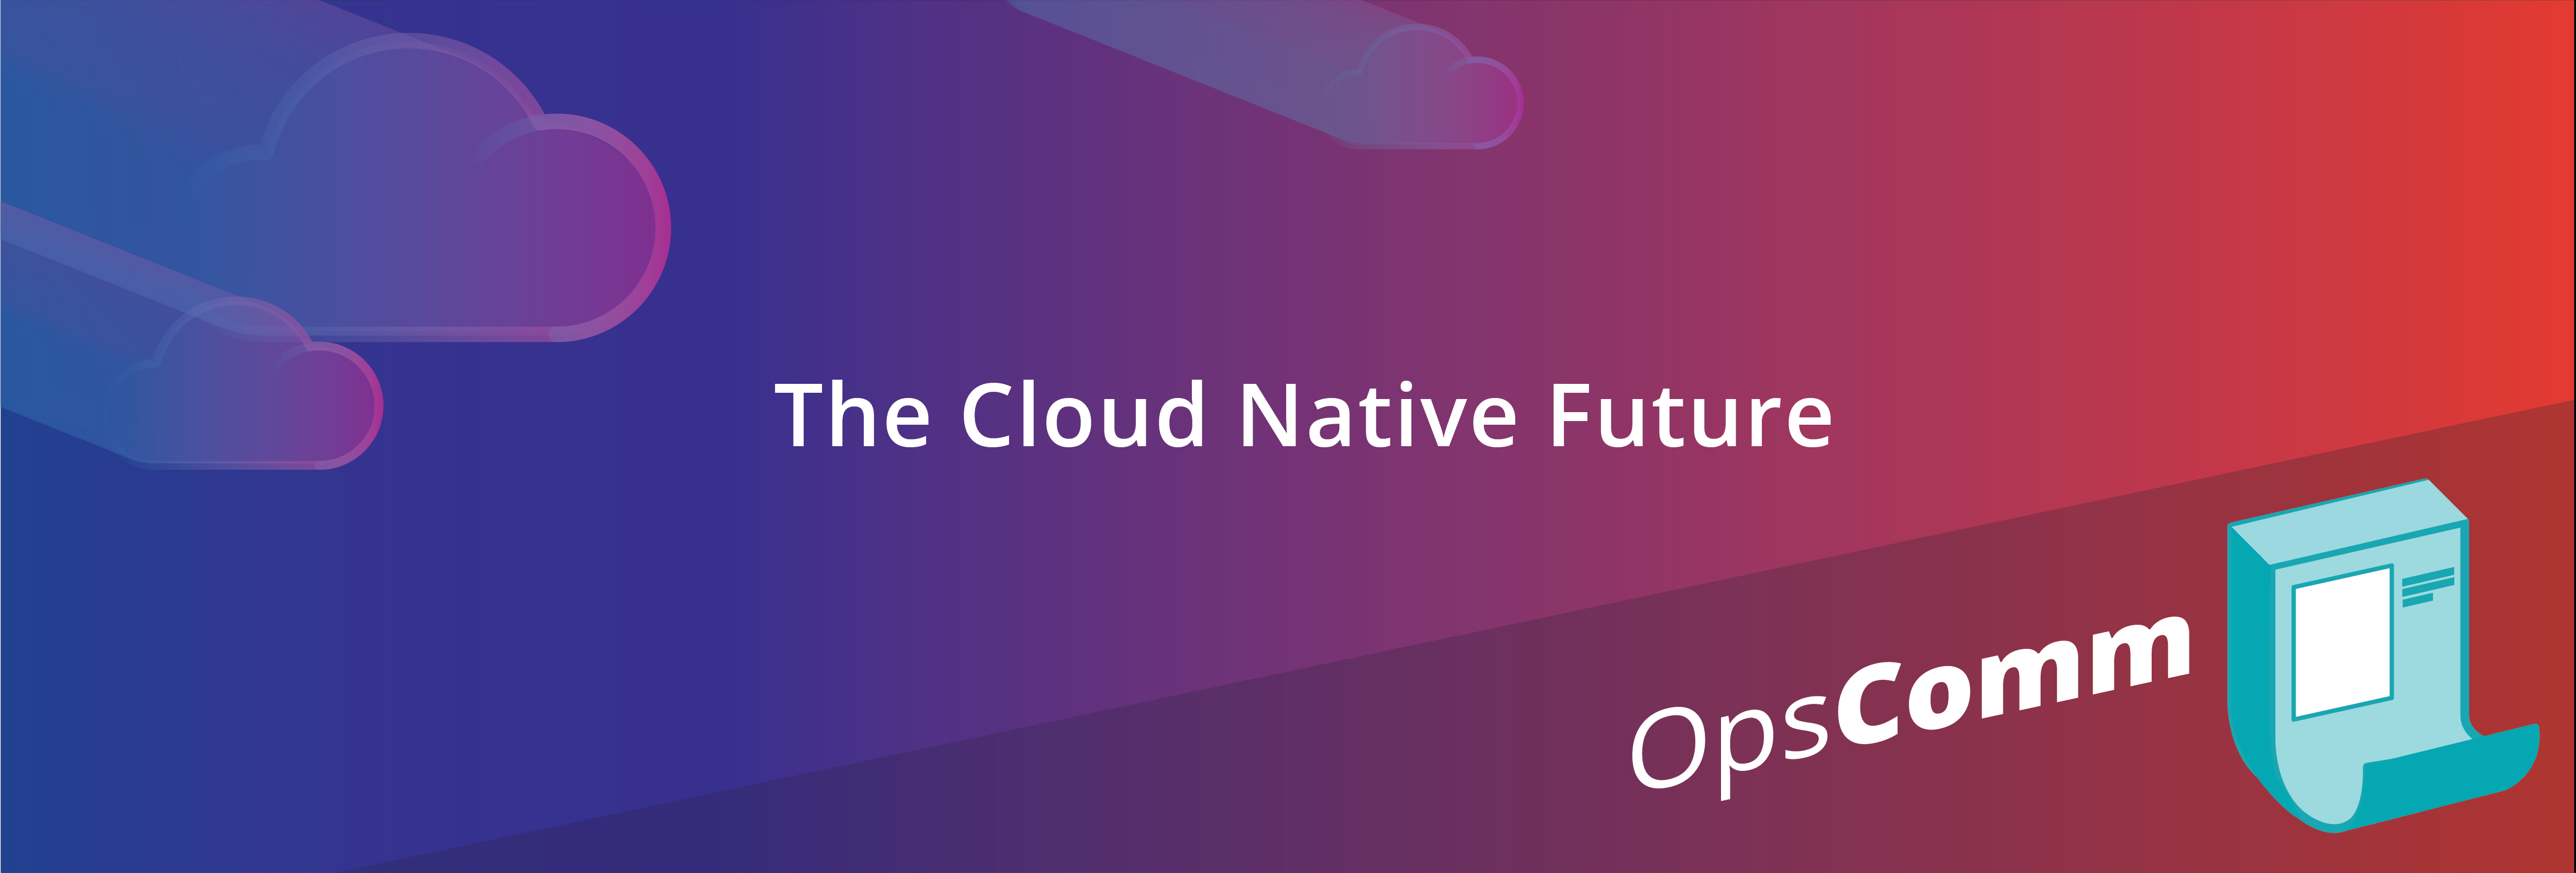 OpsComm December: The Cloud Native Future Is Here In a Big Way